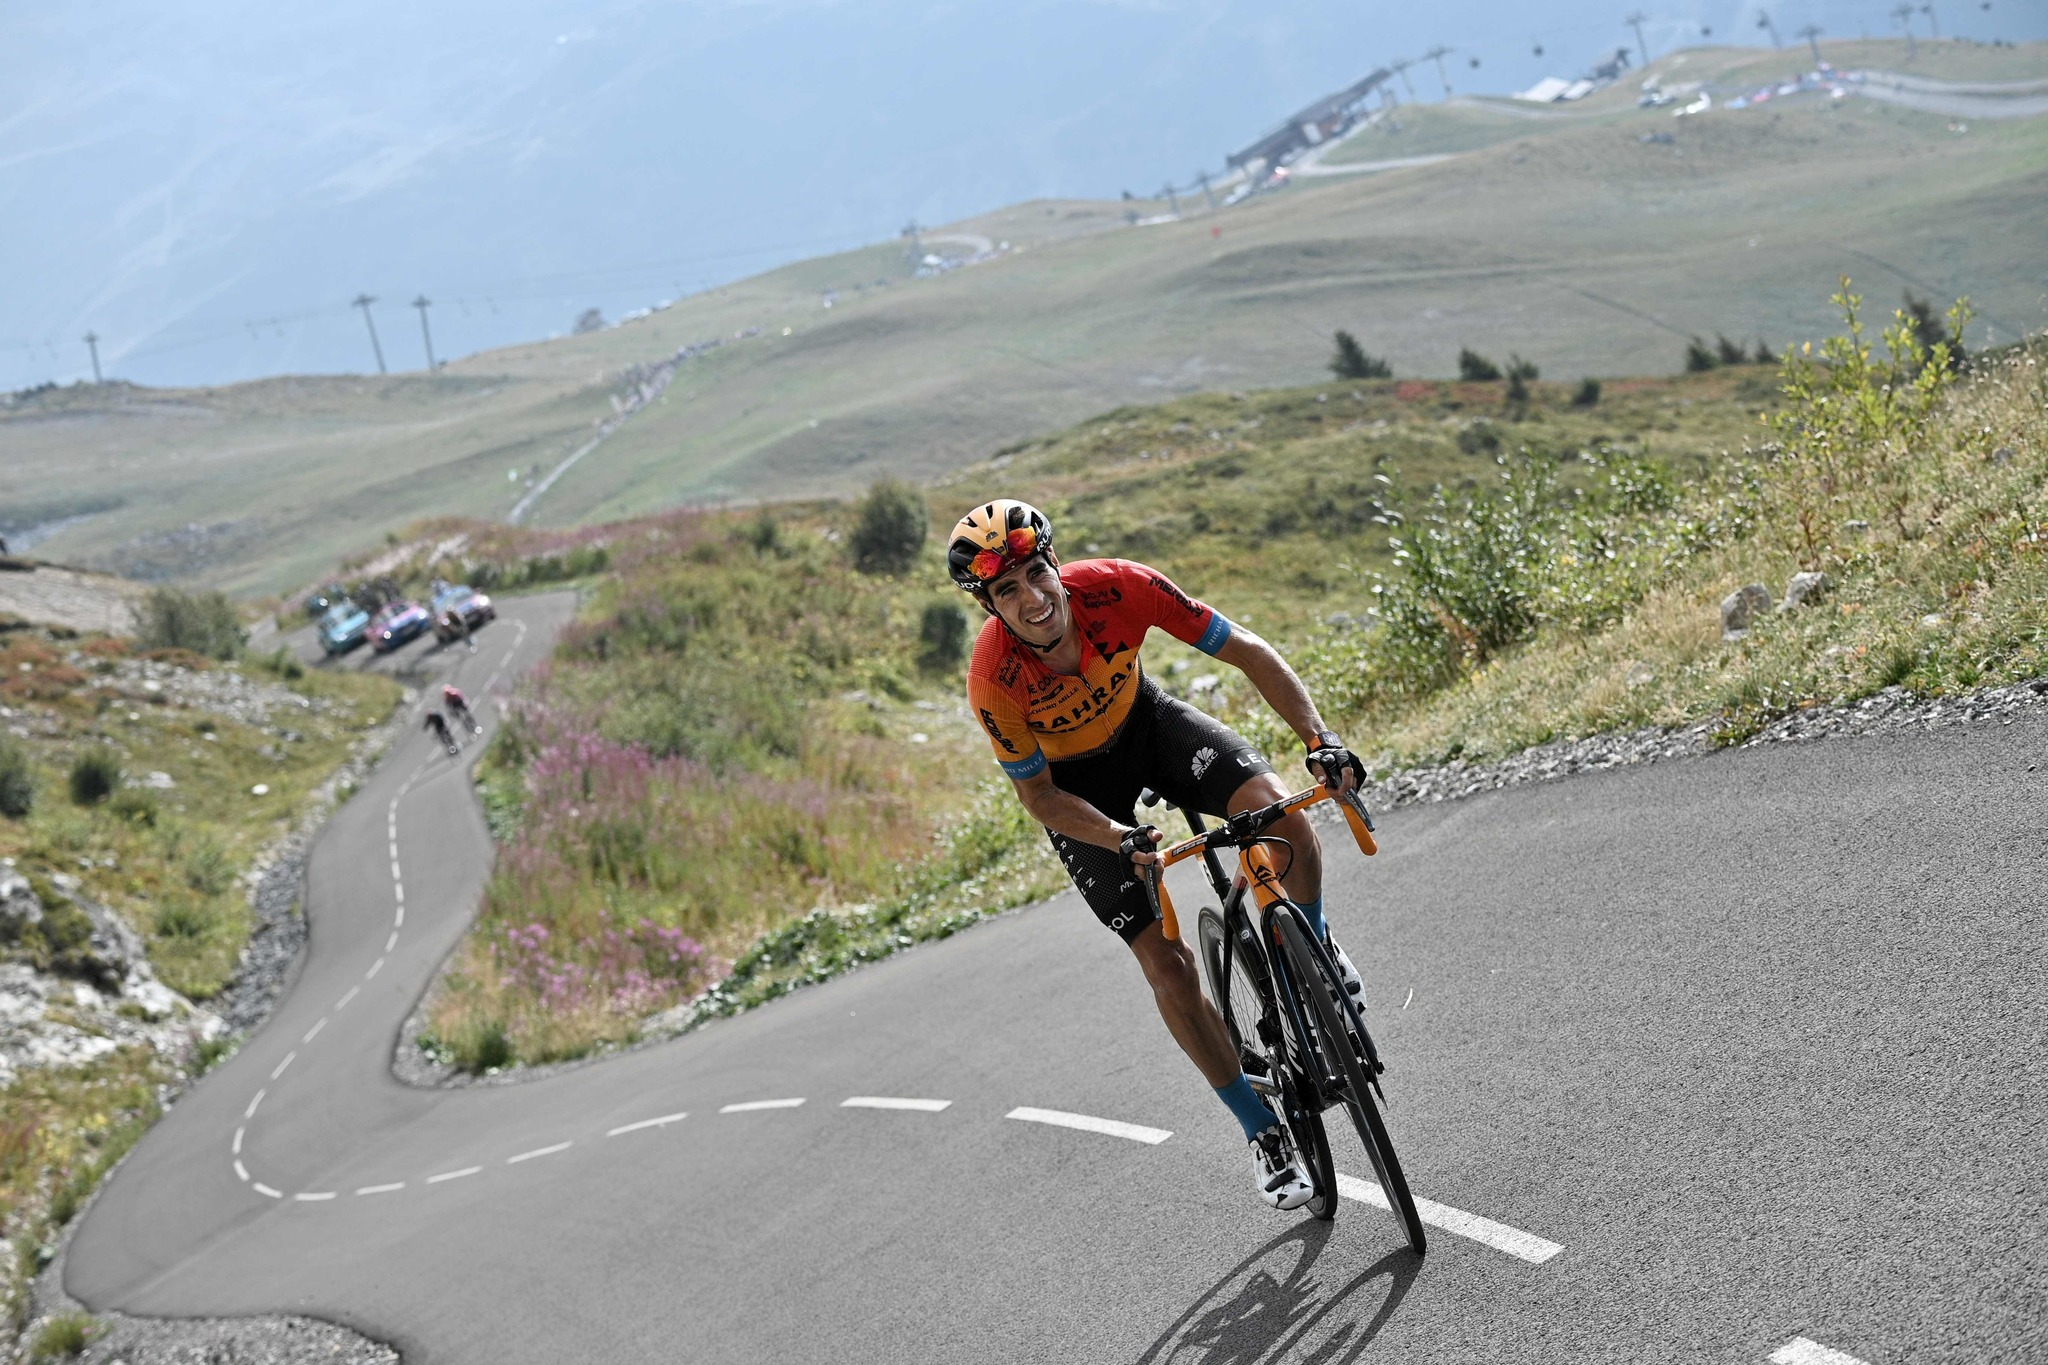 Team Bahrain rider Spains Mikel lt;HIT gt;Landa lt;/HIT gt; rides in the Loze pass during the 17th stage of the 107th edition of the Tour de France cycling race, 170 km between Grenoble and Meribel, on September 16, 2020. (Photo by Anne-Christine POUJOULAT / AFP)